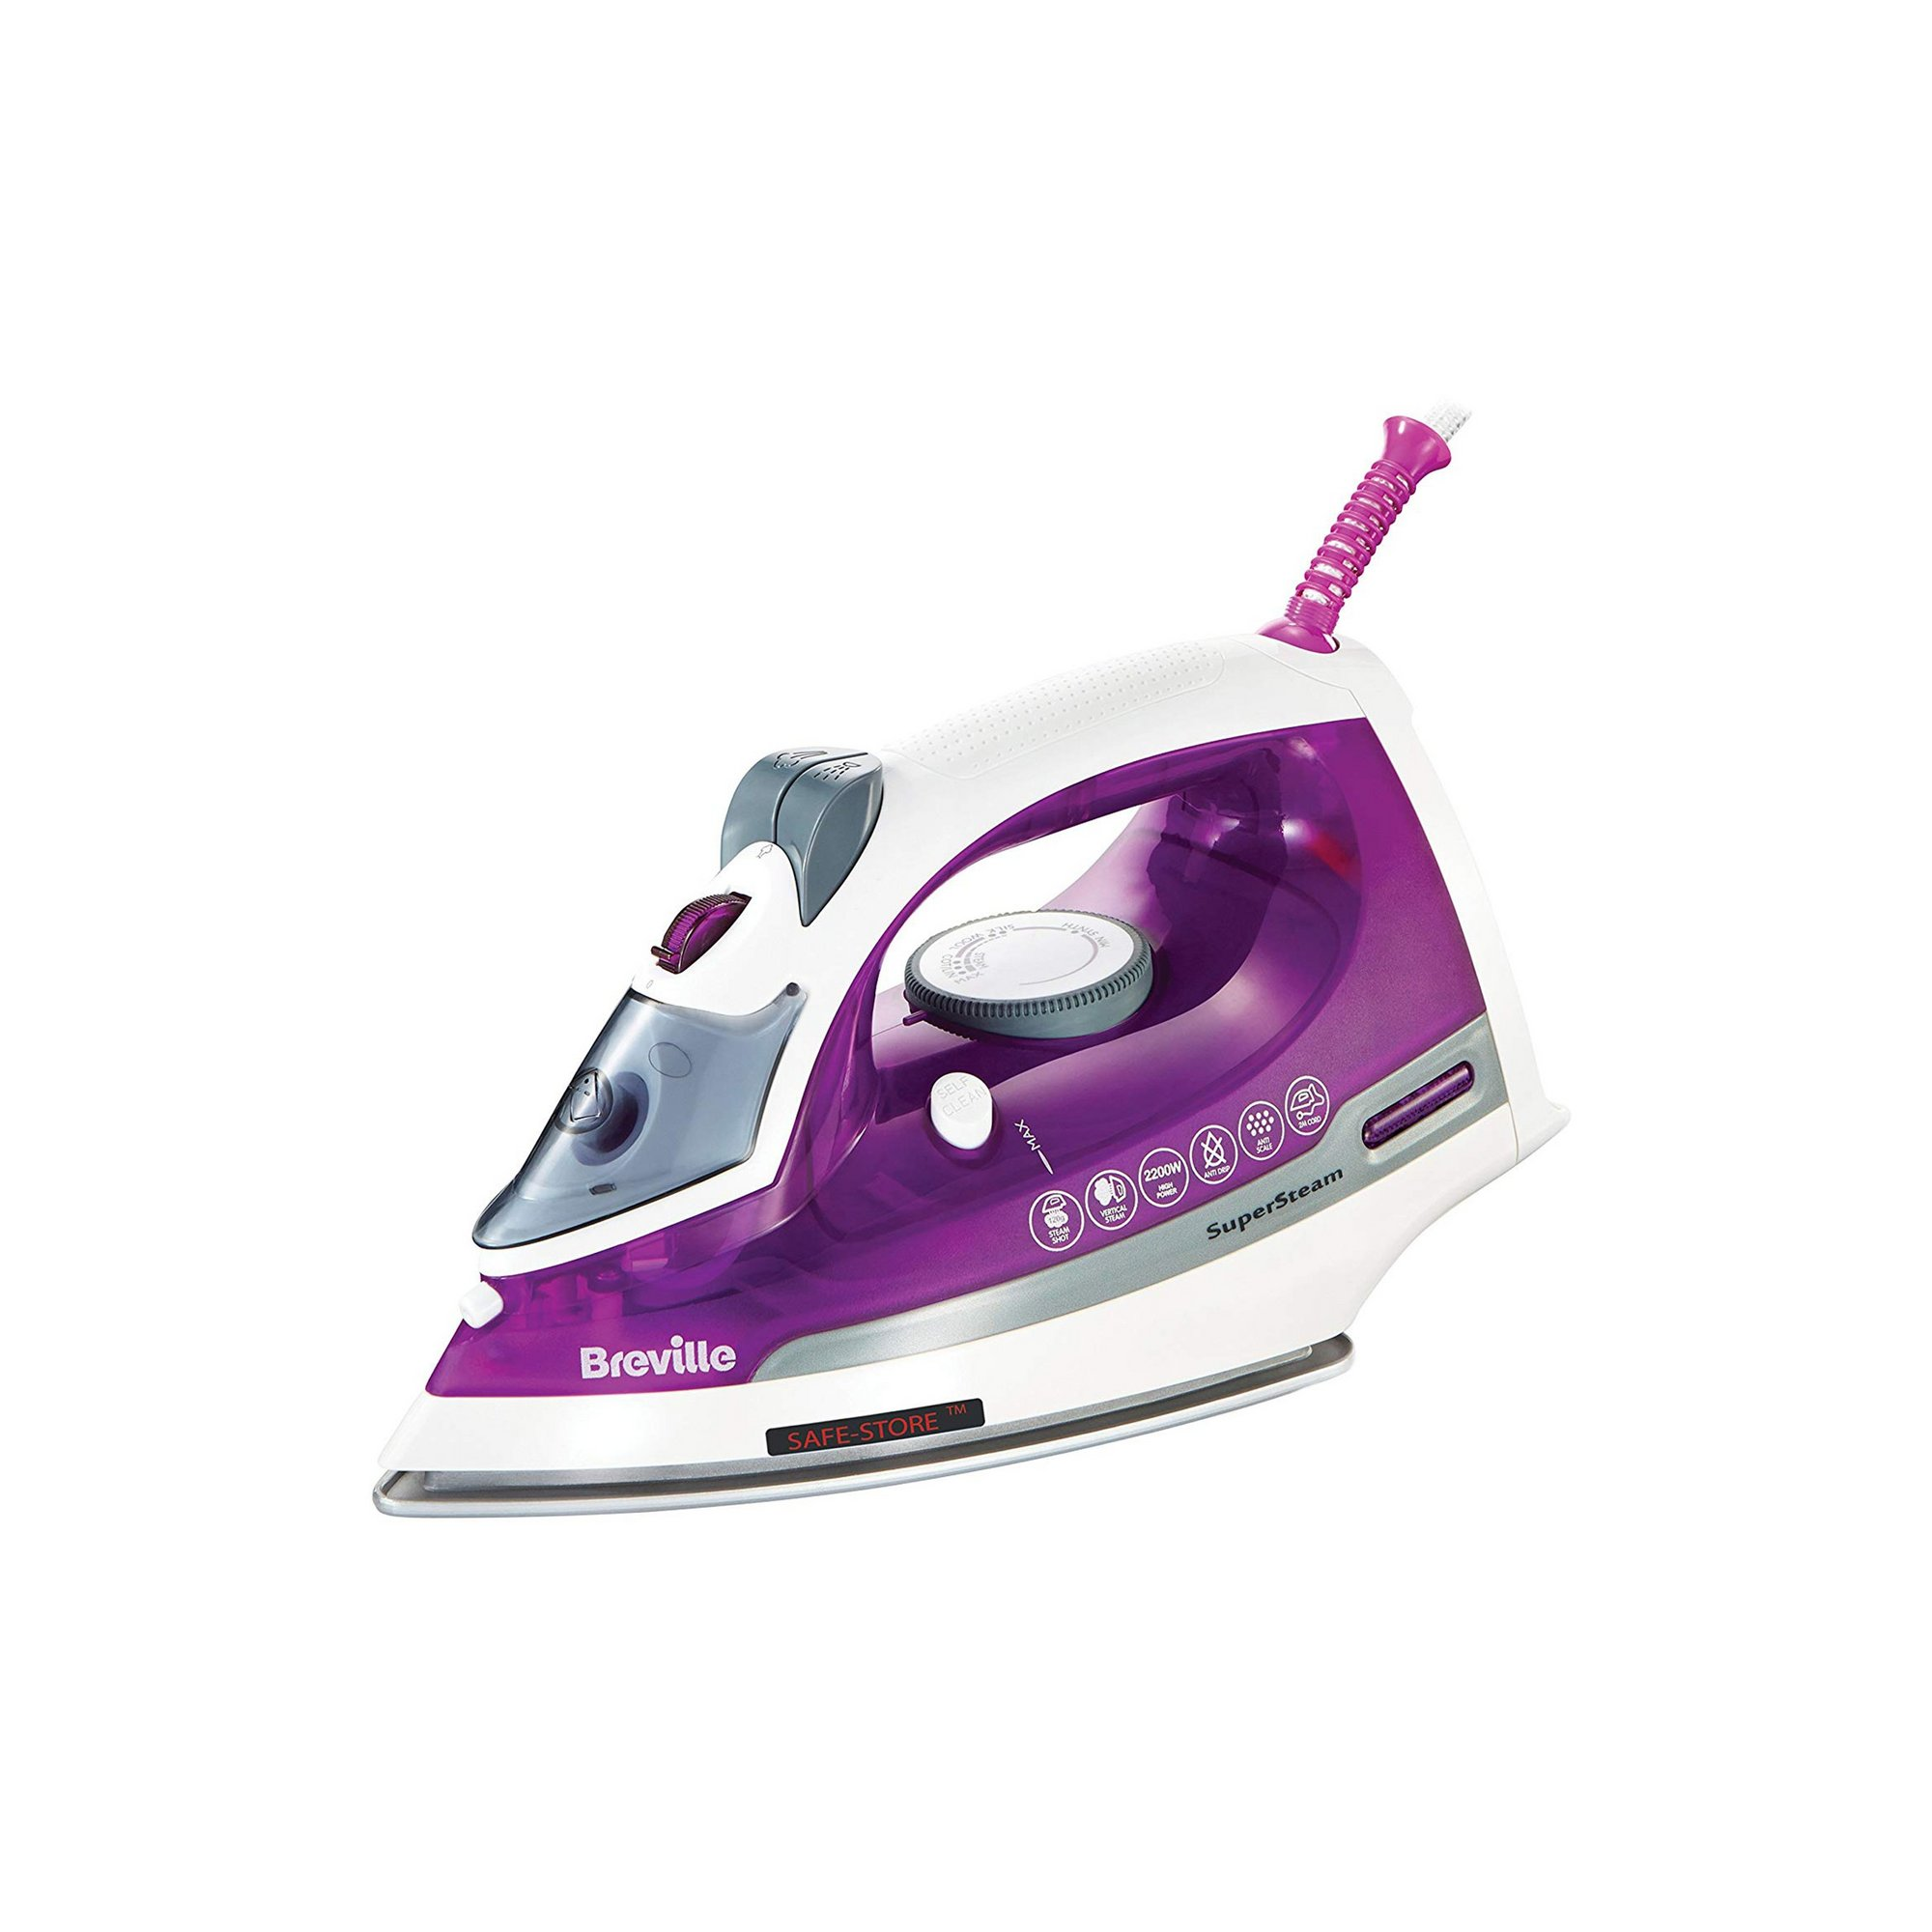 Image of Breville SuperSteam 2200W Iron